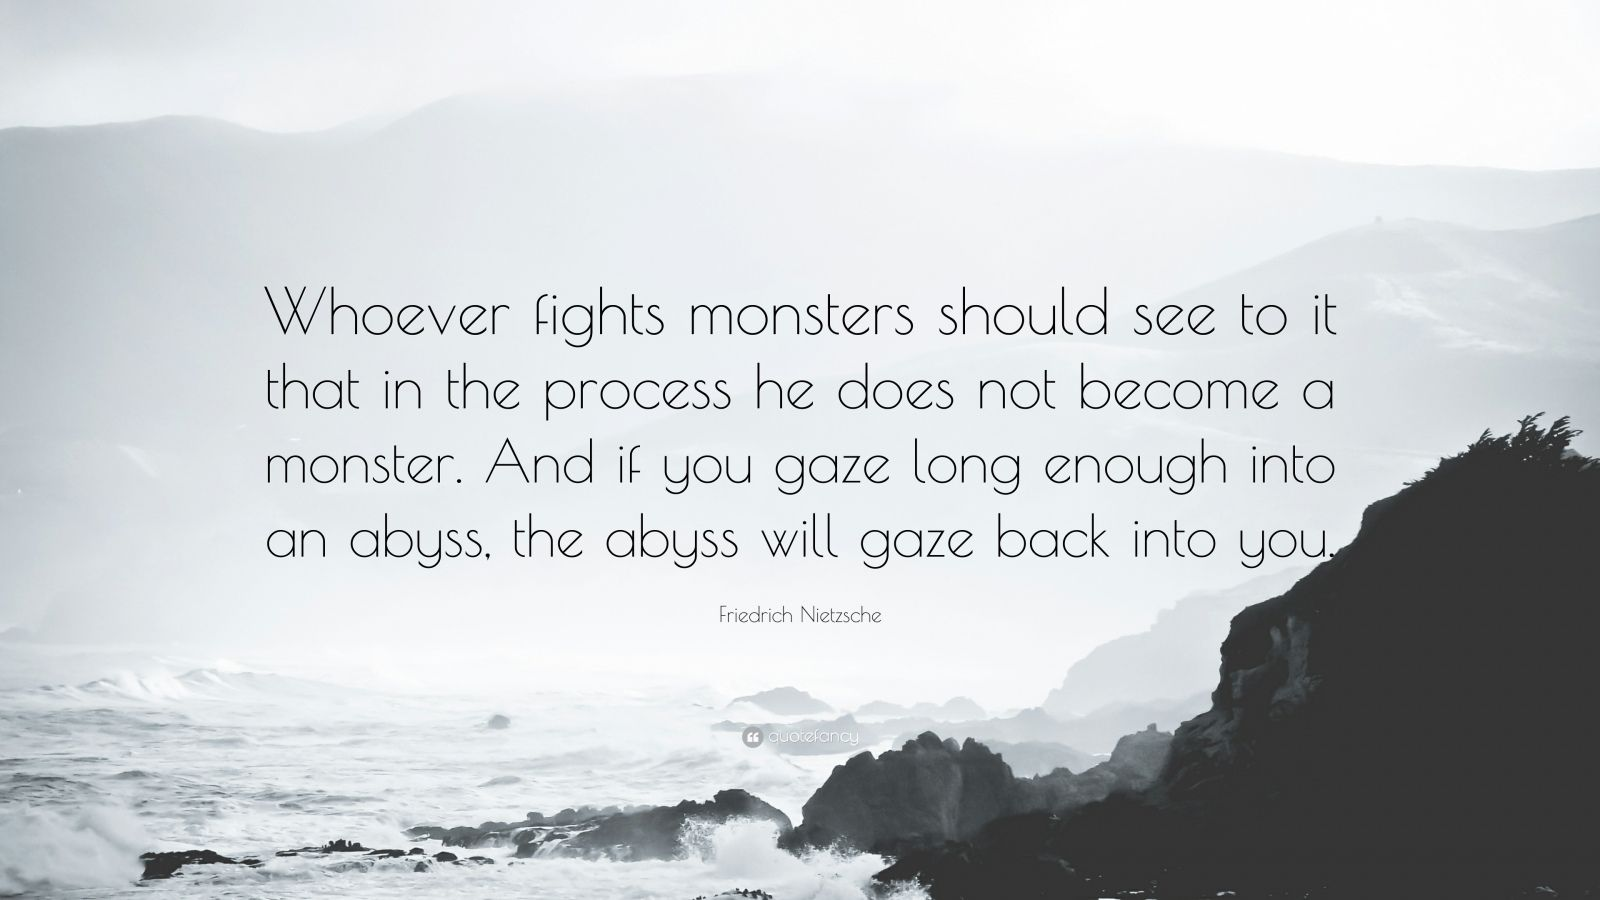 Ernest Hemingway Quote Wallpaper Friedrich Nietzsche Quote Whoever Fights Monsters Should